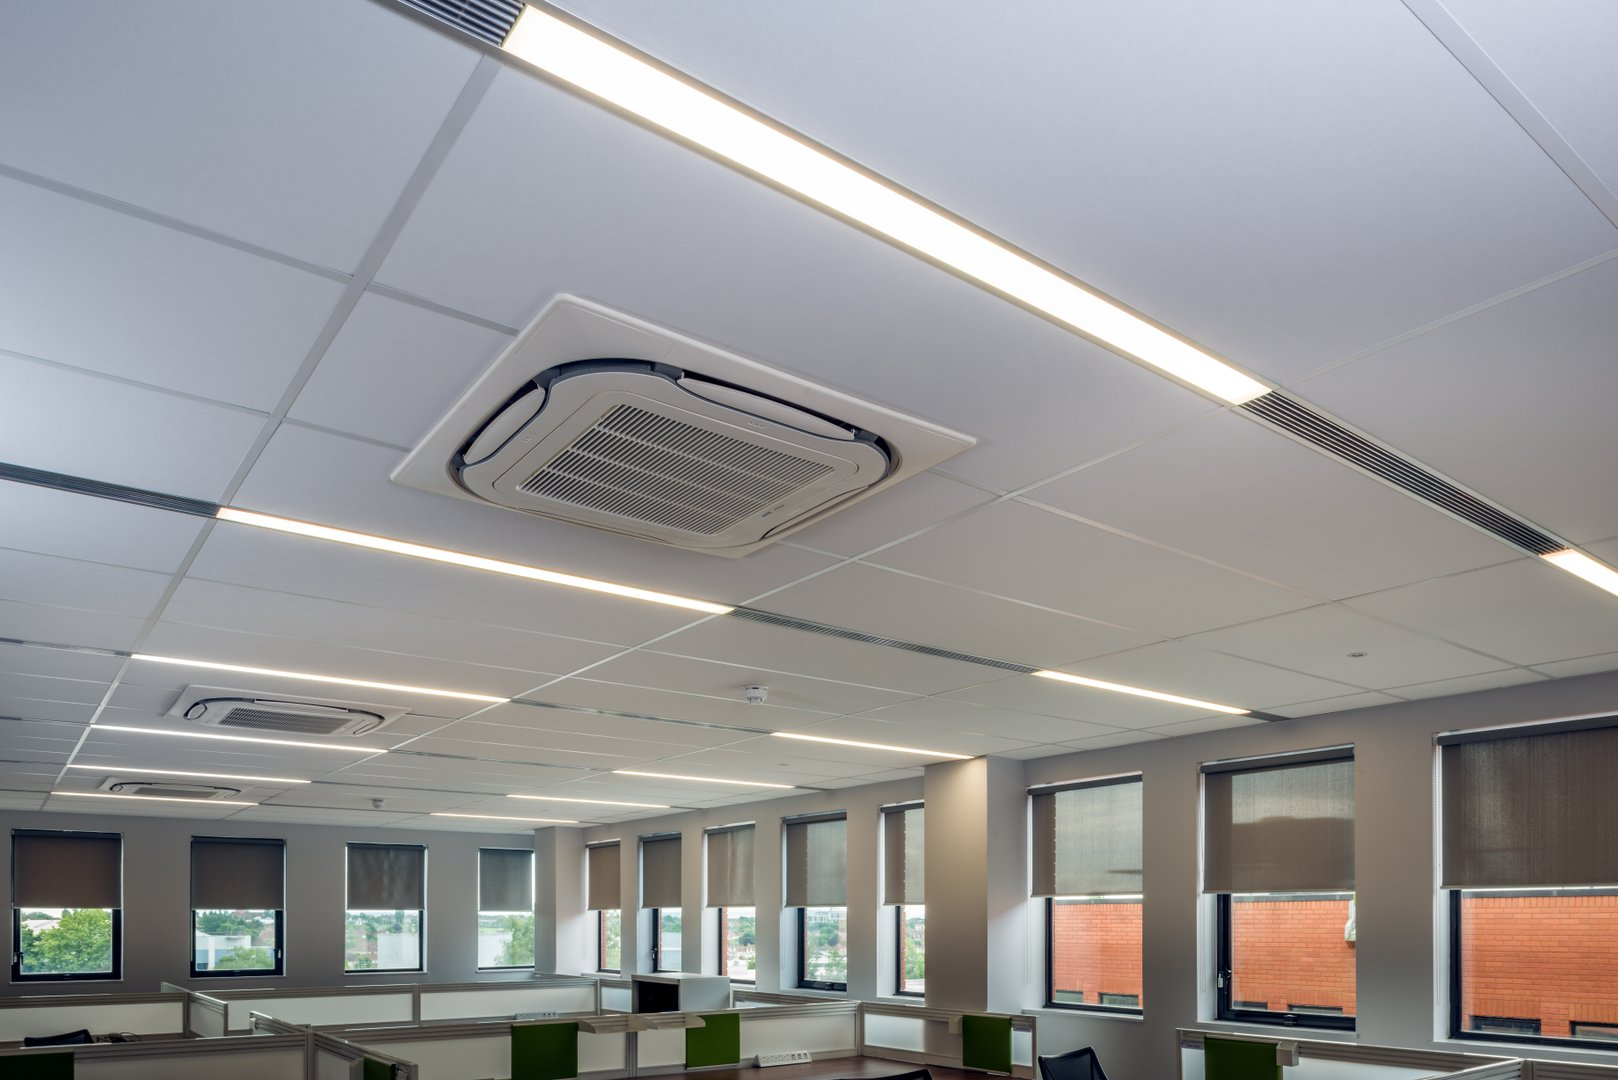 Recessed with trim LED Linear lighting